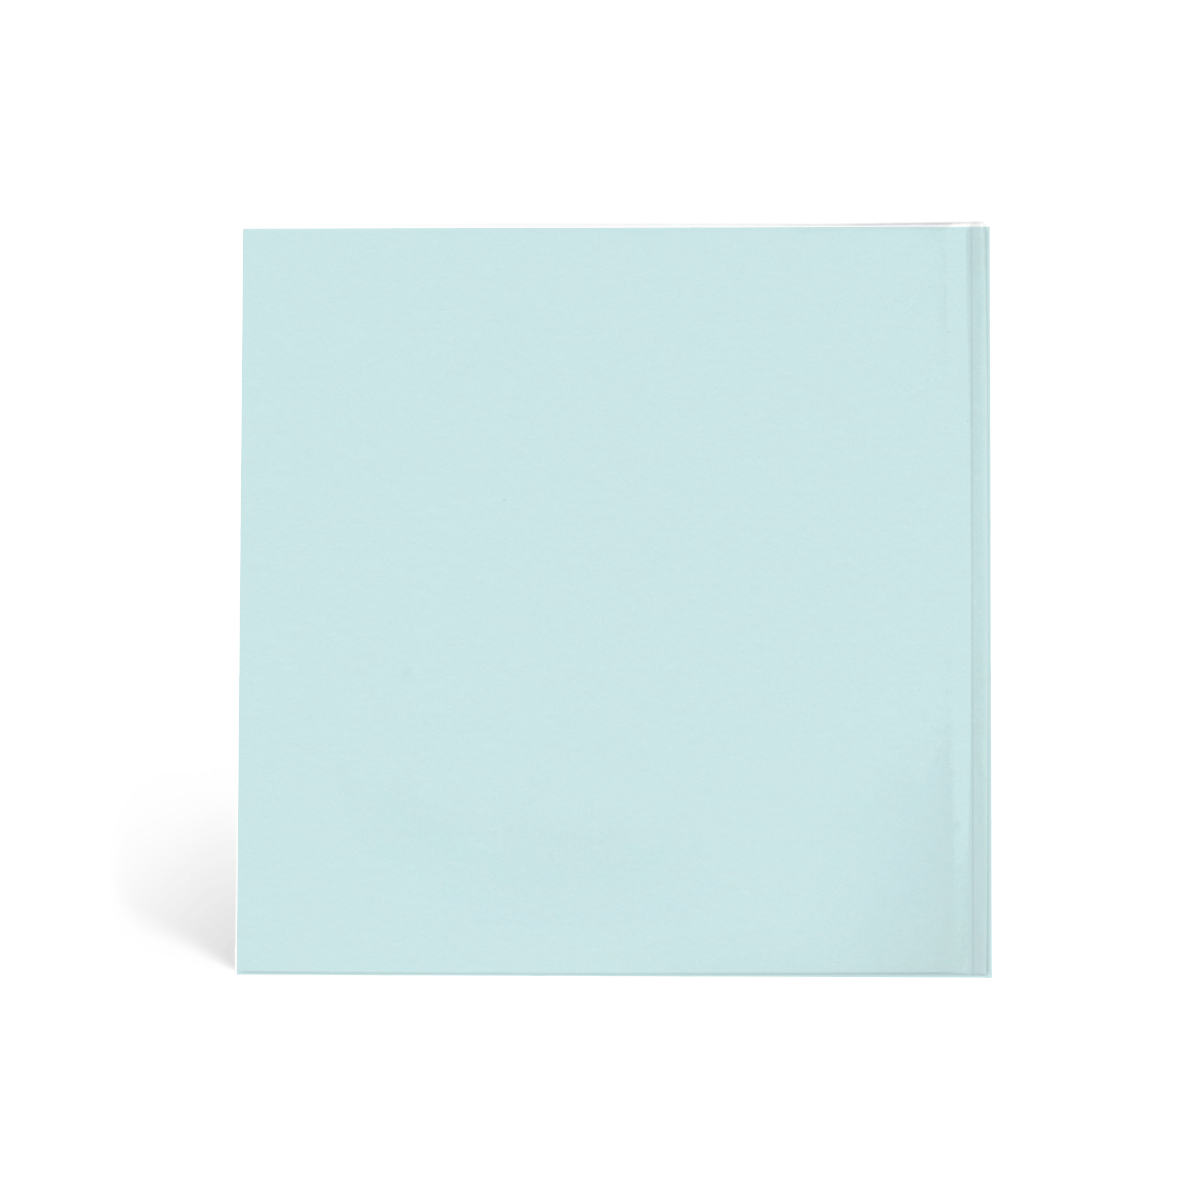 Https%3a%2f%2fwww.papier.com%2fproduct image%2f42473%2f24%2fcolour block 10868 rueckseite 1533137721.png?ixlib=rb 1.1